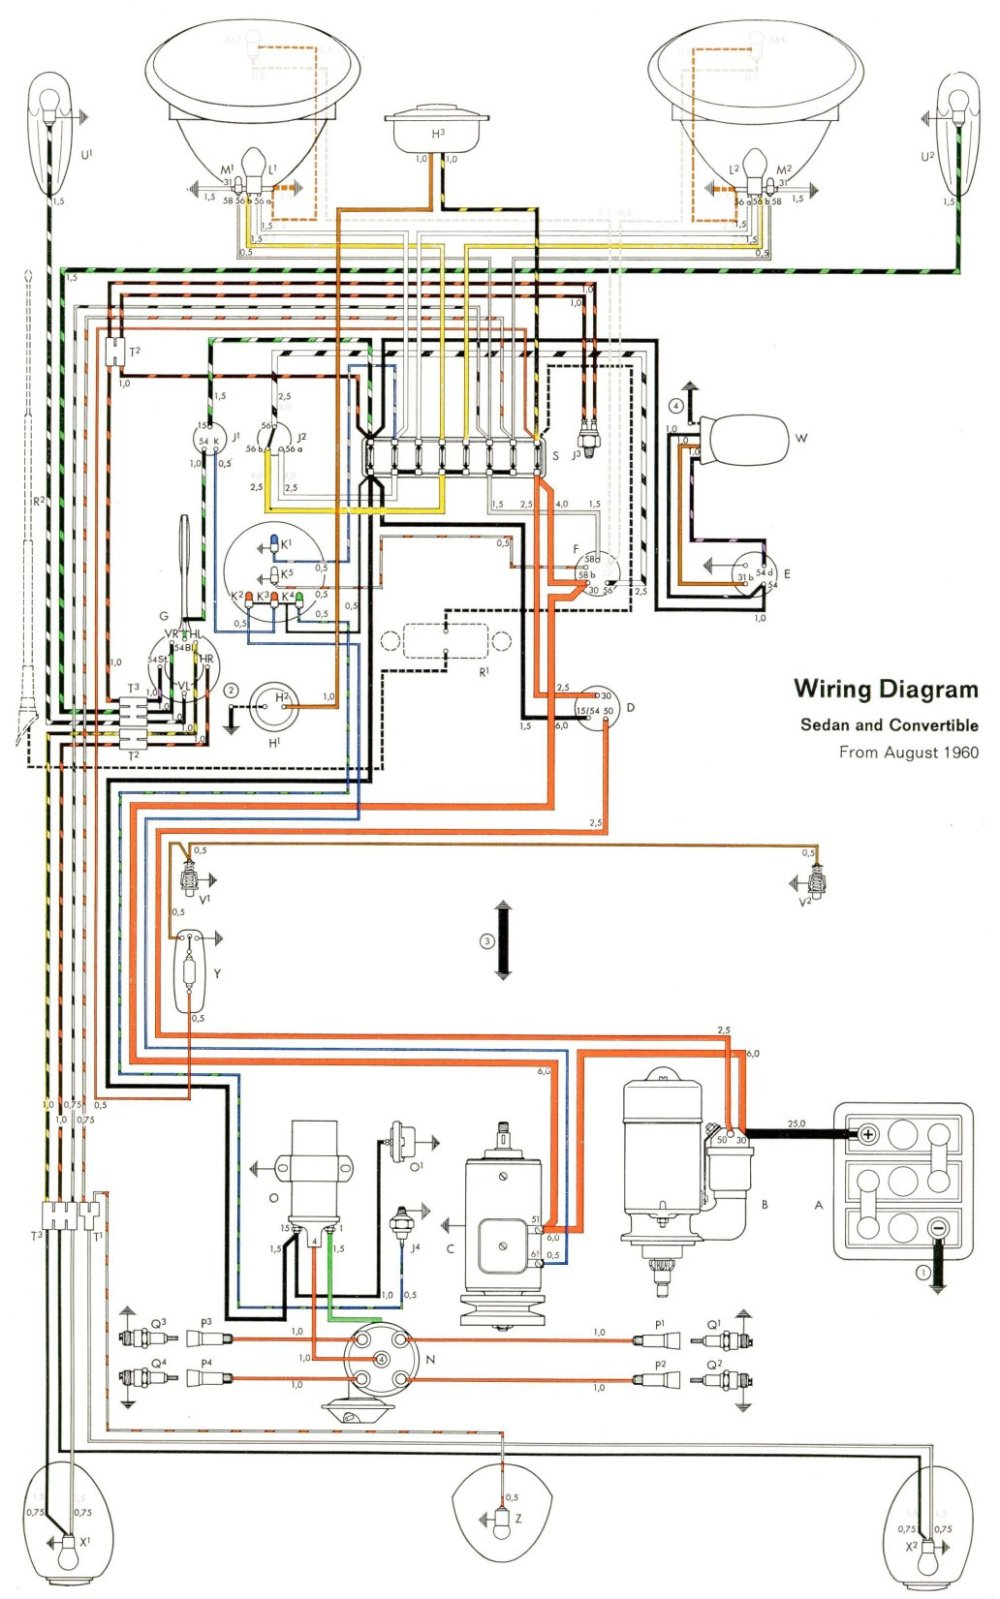 medium resolution of 77 vw wiring diagram wiring diagram yer 77 vw wiring diagram